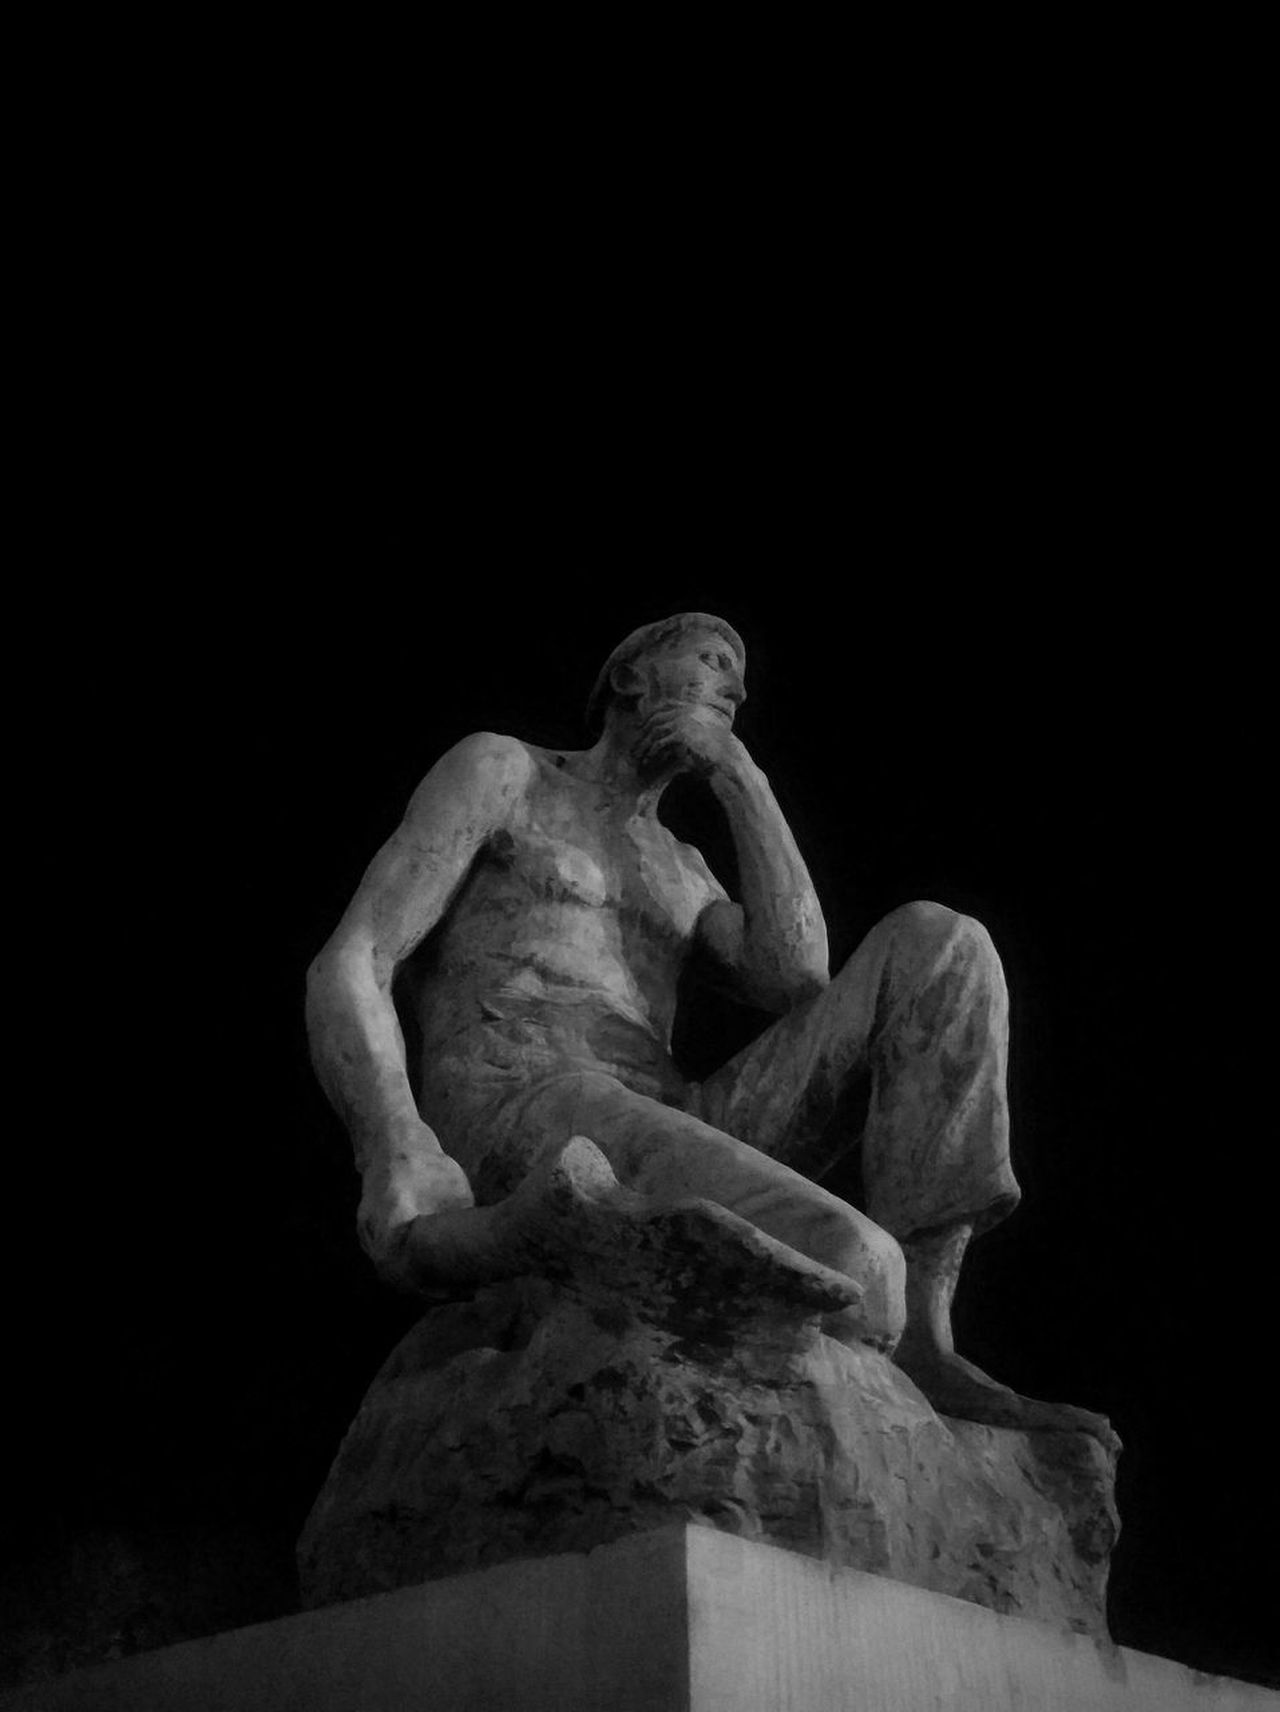 Statue Boudouin Charleroi BE Black & White Black And White Photography Black Background Boudouin Low Angle View Memorial Monument Night Night Photography Nightshot No People Representing Sculpture Statue